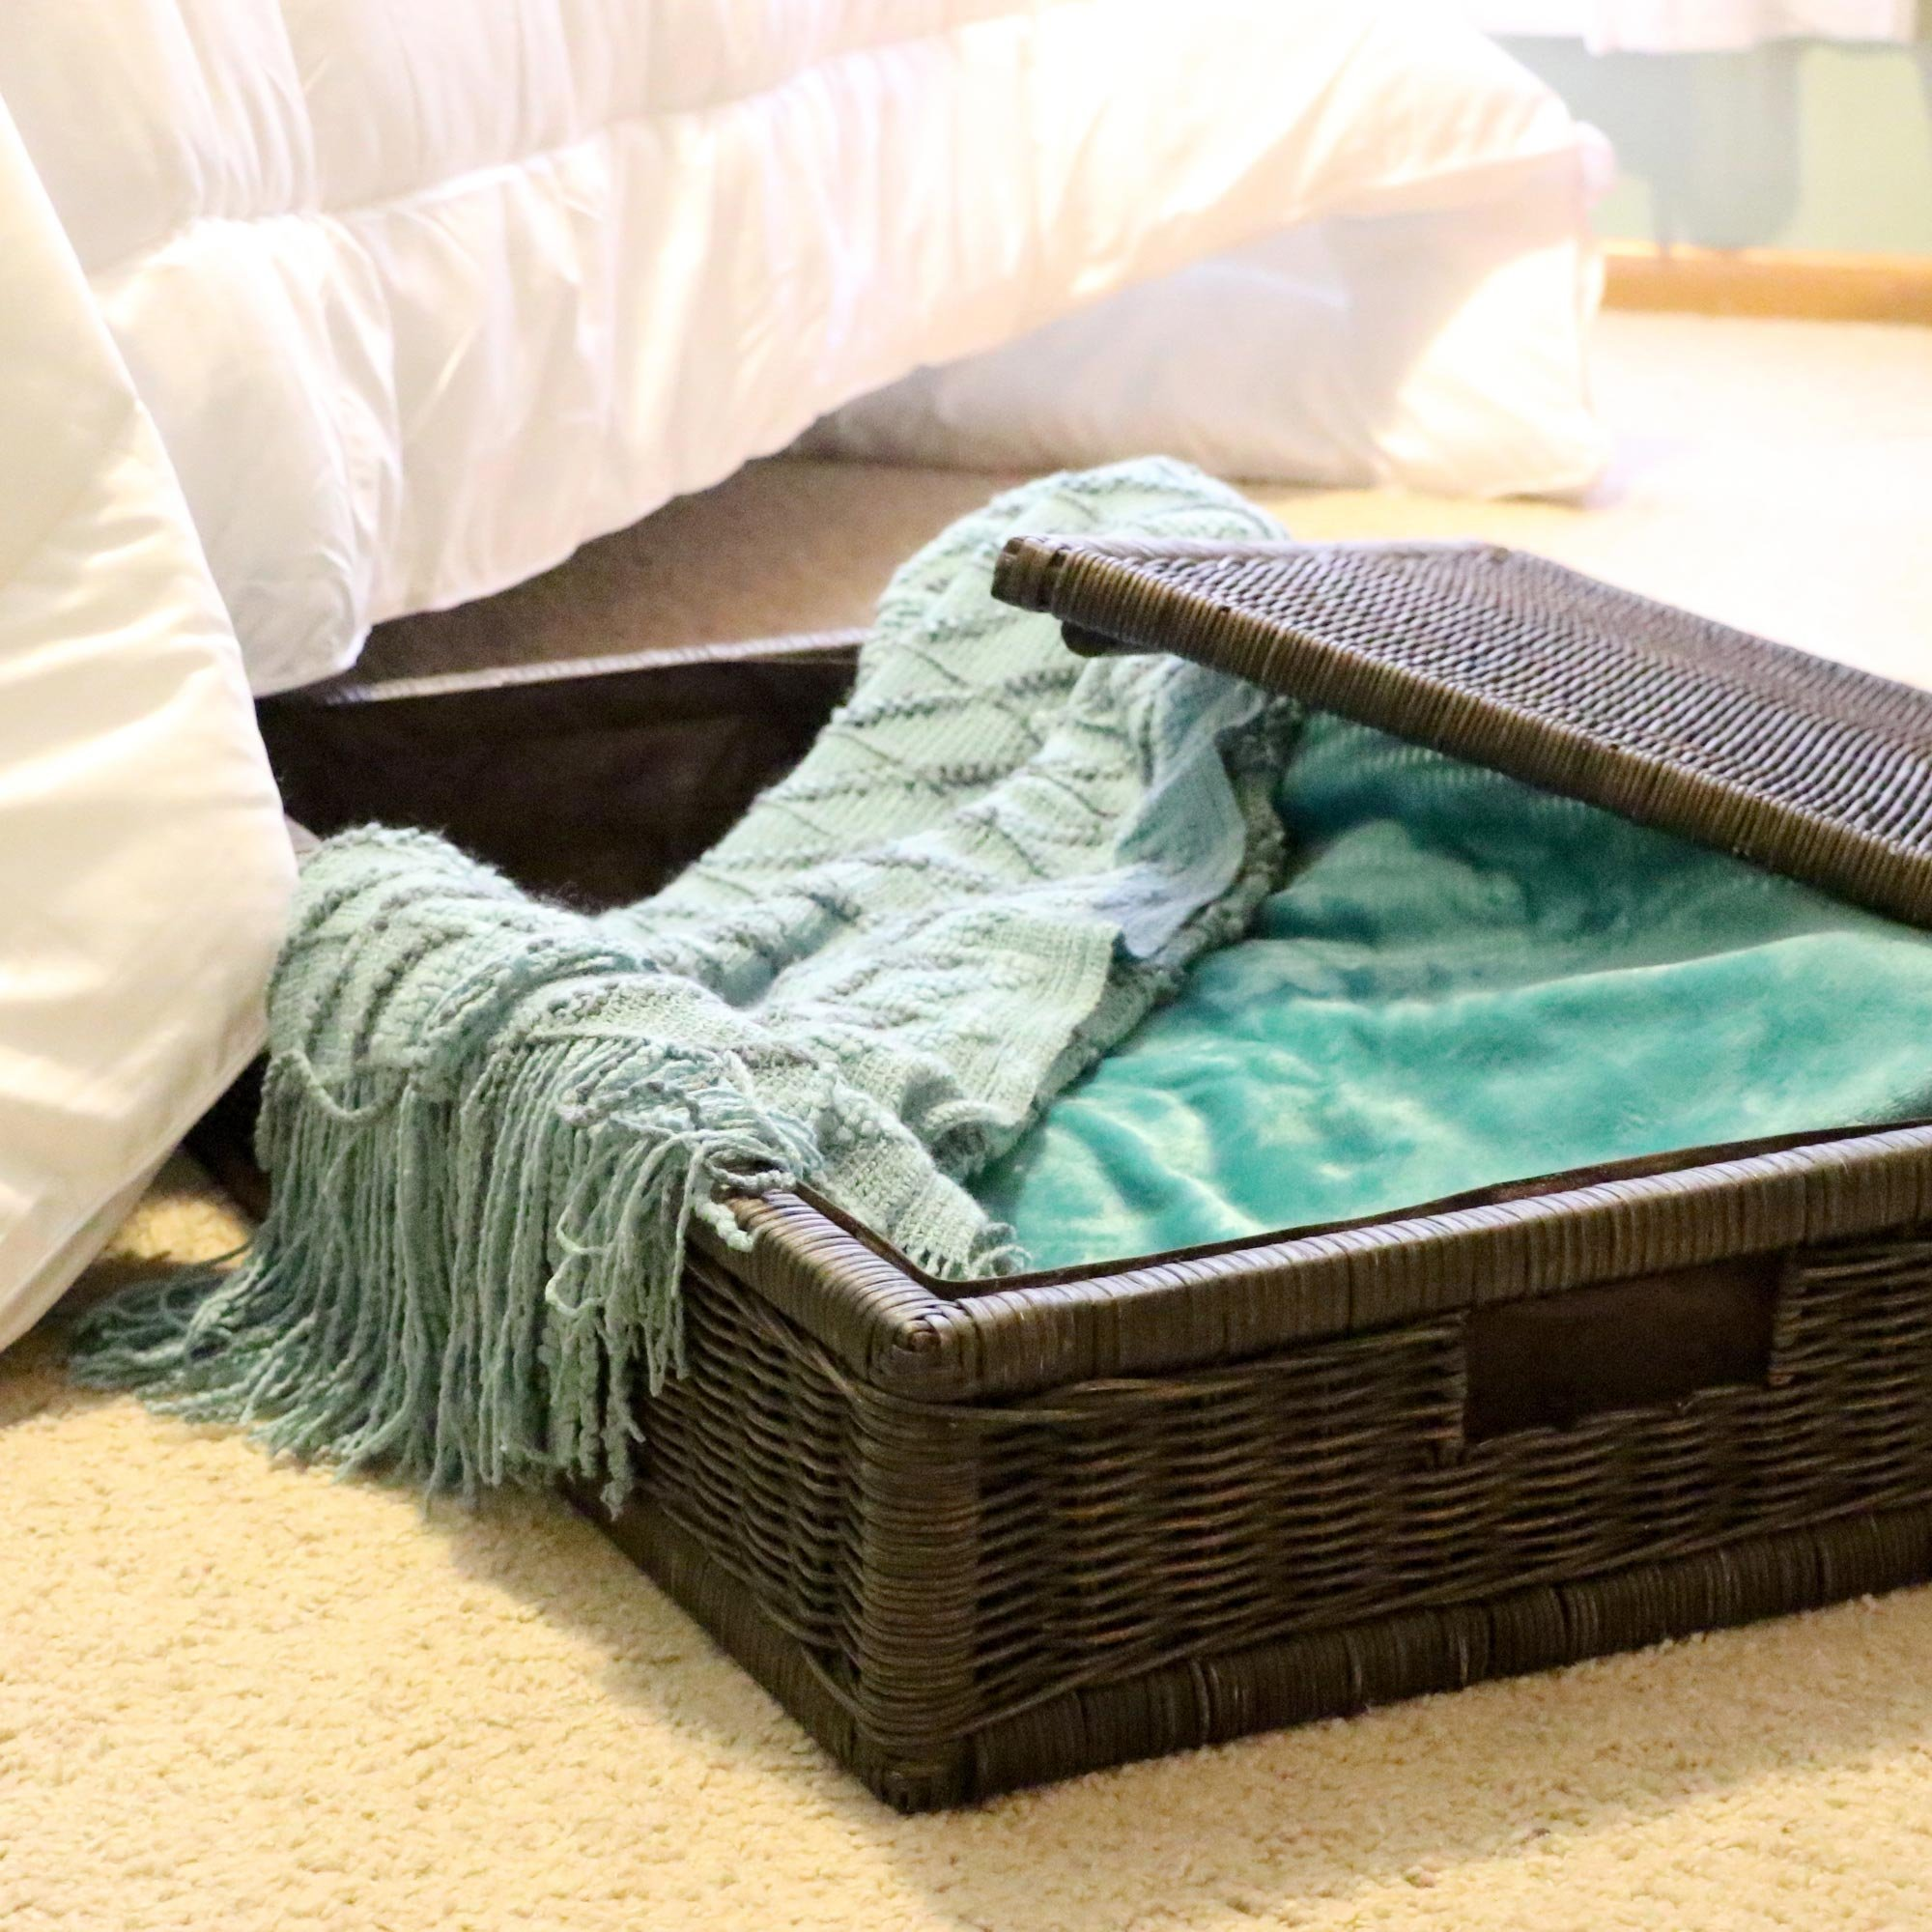 The Basket Lady Underbed Wicker Storage Box, Extra Large, 31 in L x 21 in W x 11 in H, Antique Walnut Brown by The Basket Lady